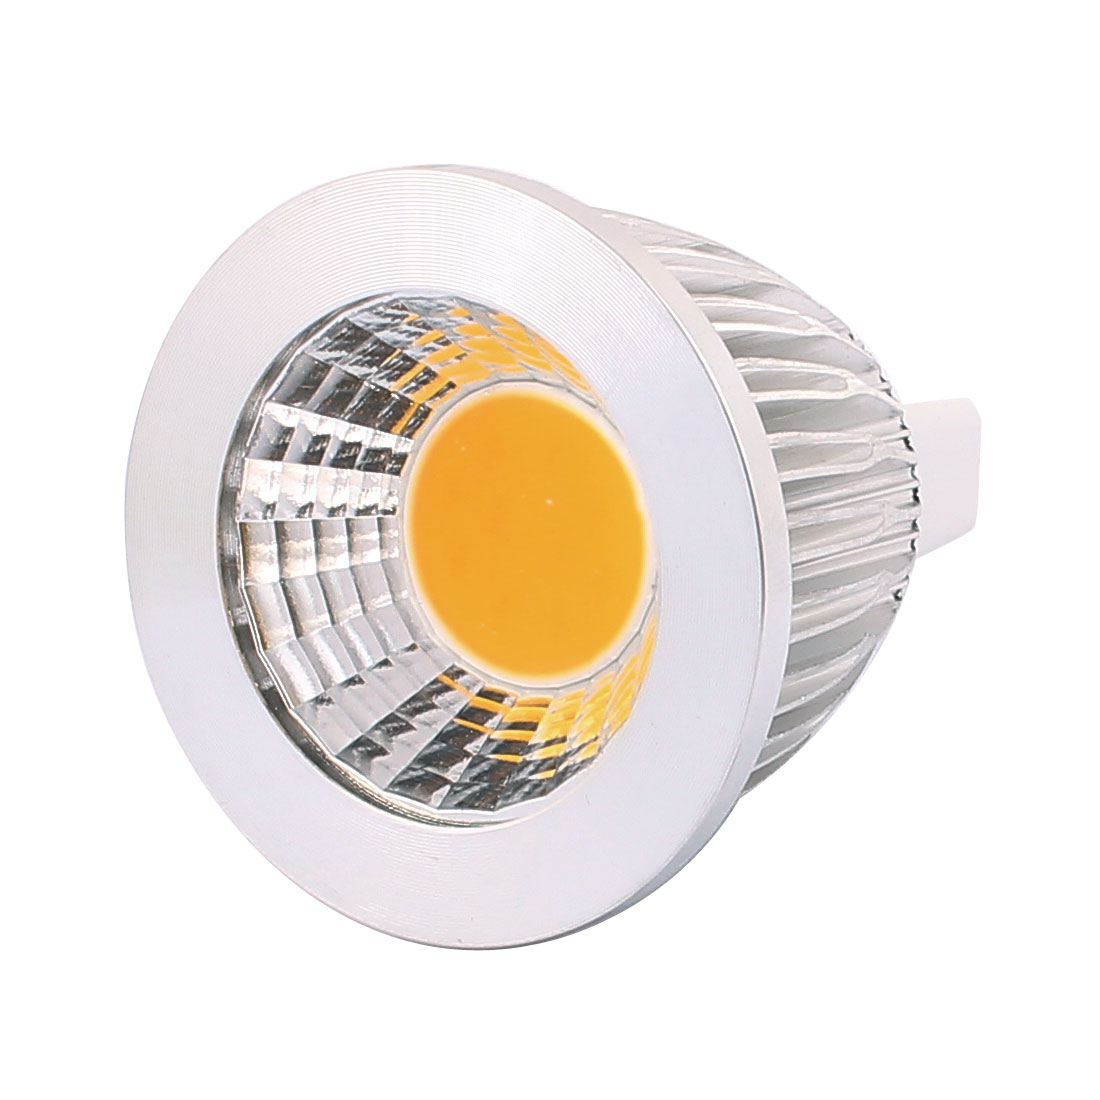 DC12V 5W Bright MR16 COB LED Spot Down Light Lamp Energy Saving Warm White